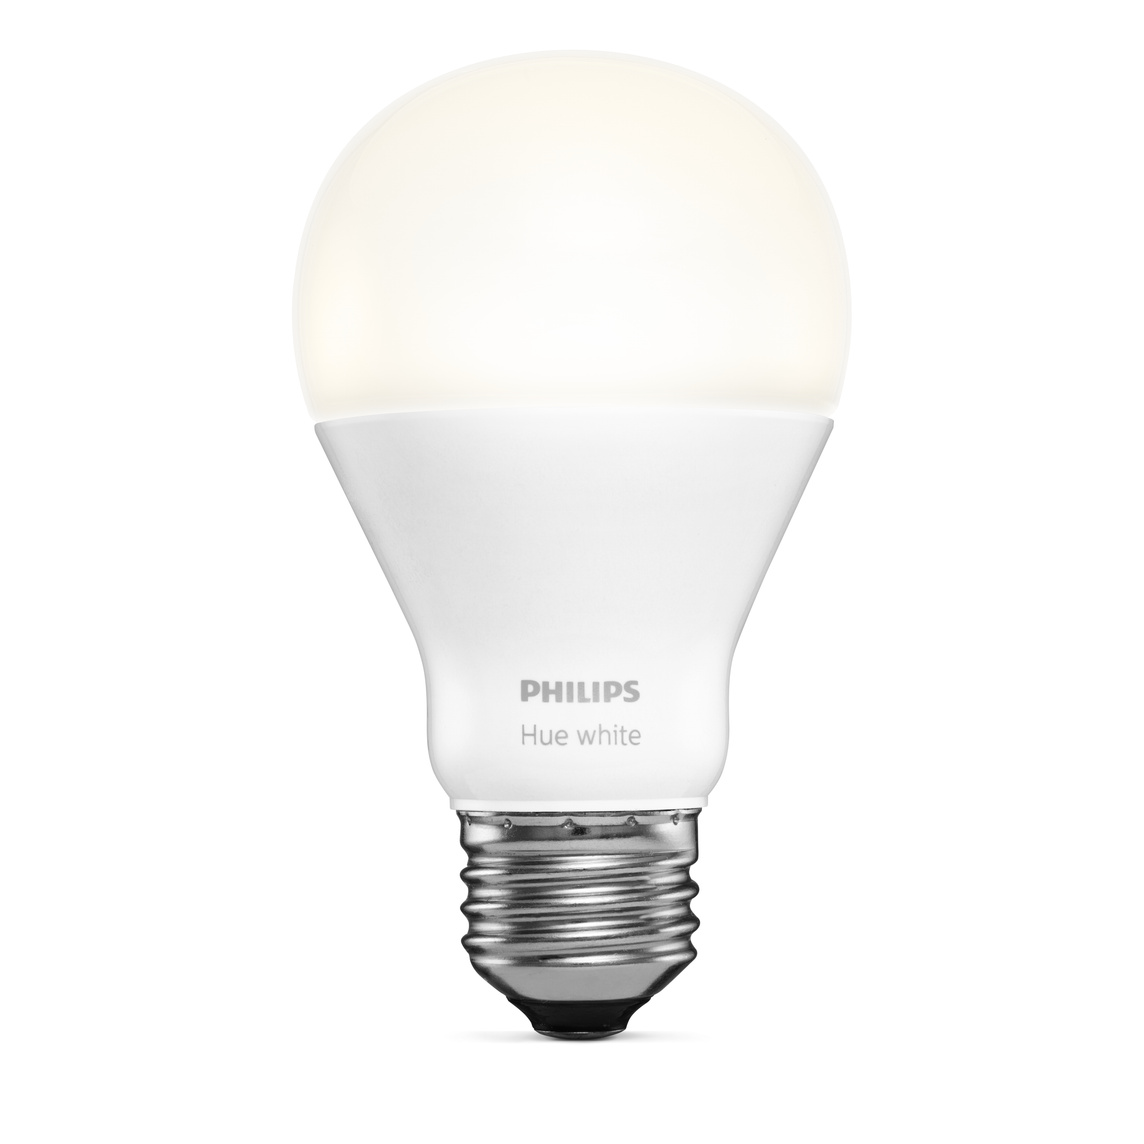 E27 D'extension A60 Philips White Hue Ampoule 8OPZN0knwX